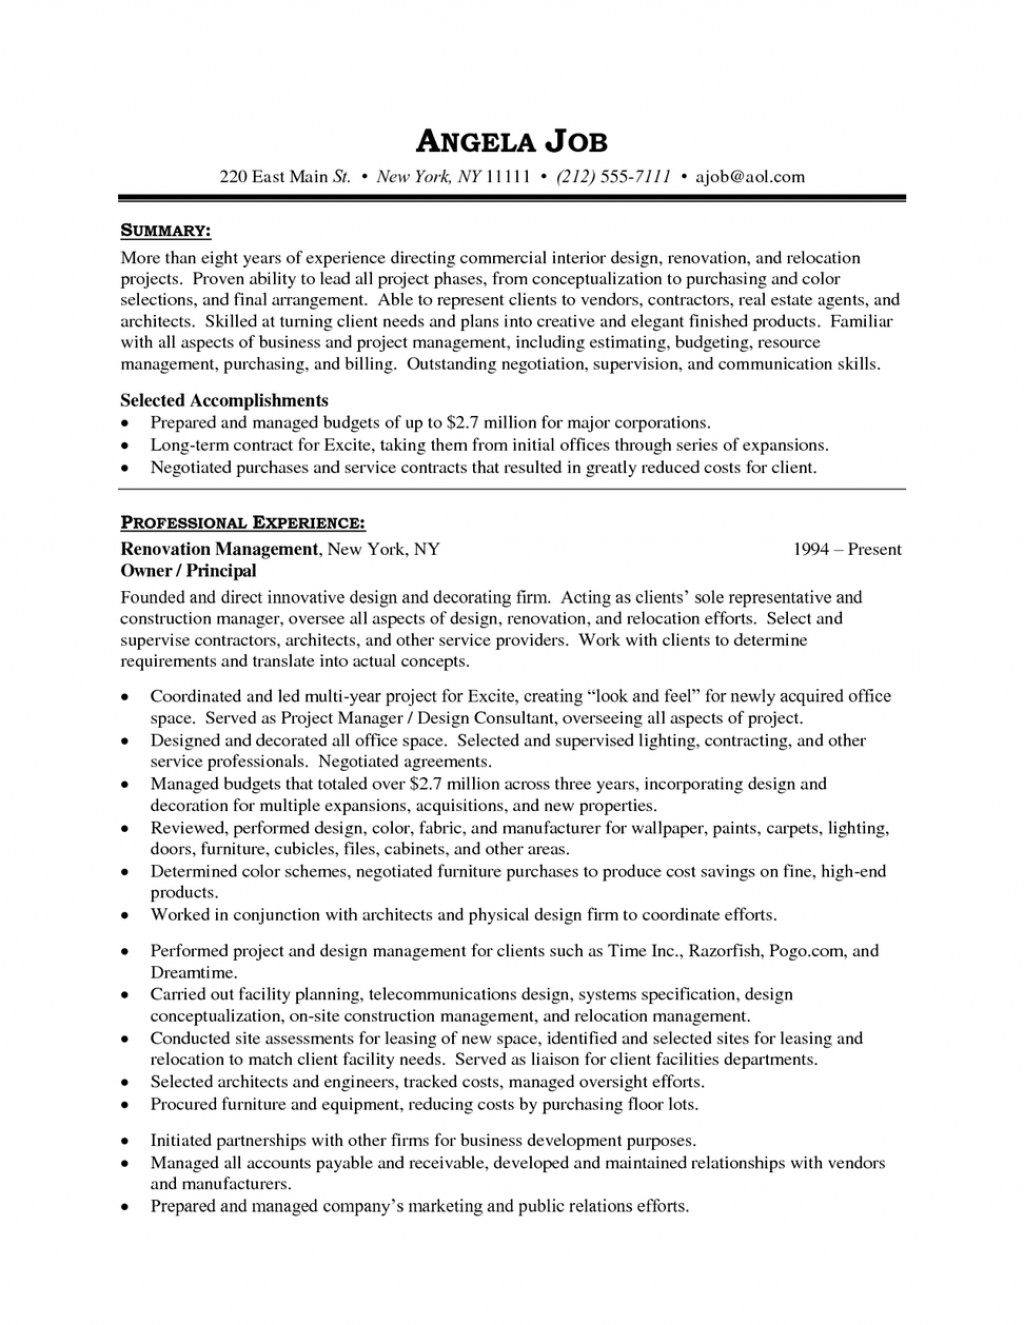 009 Essay Example Adoption Persuasive Speech Outline Topics Personalterior Design Assistant Resumeterior Exampleterior Designterior Websites Career Designing Staggering Public Relations White Paper Sample Research Large